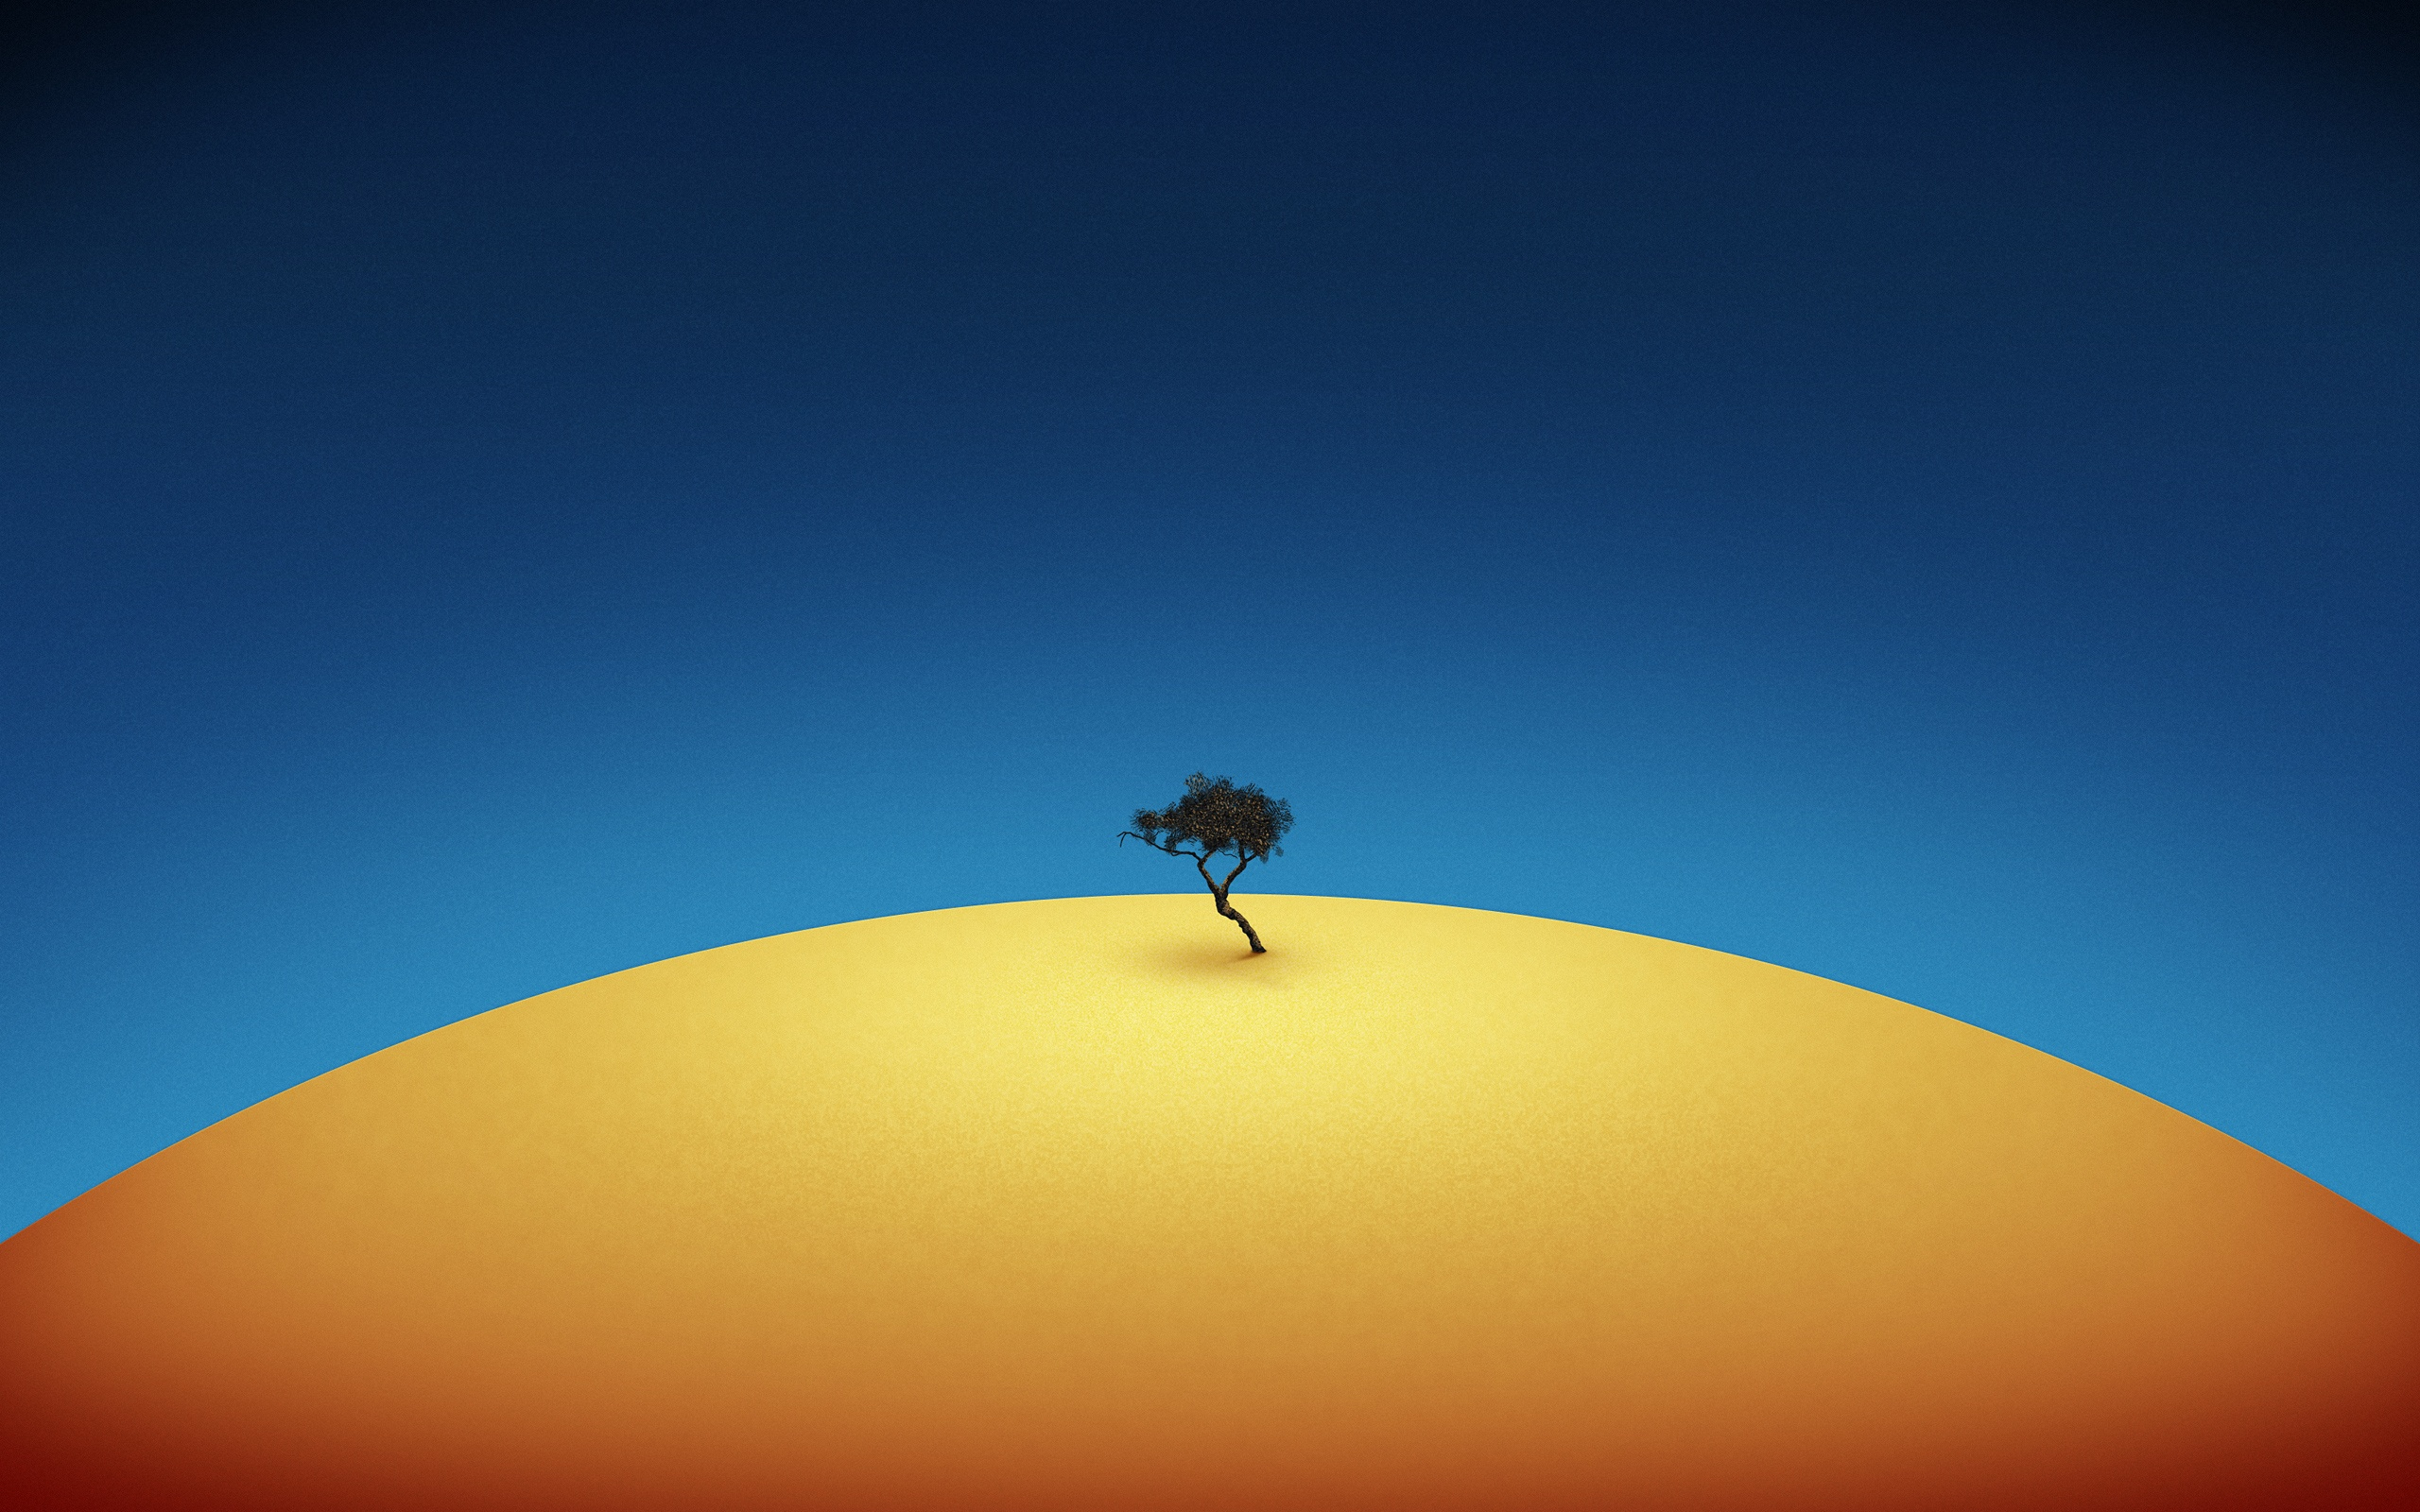 fantasy-earth-yellow-planet-tree-alone-blue-sky-round-2560x1600